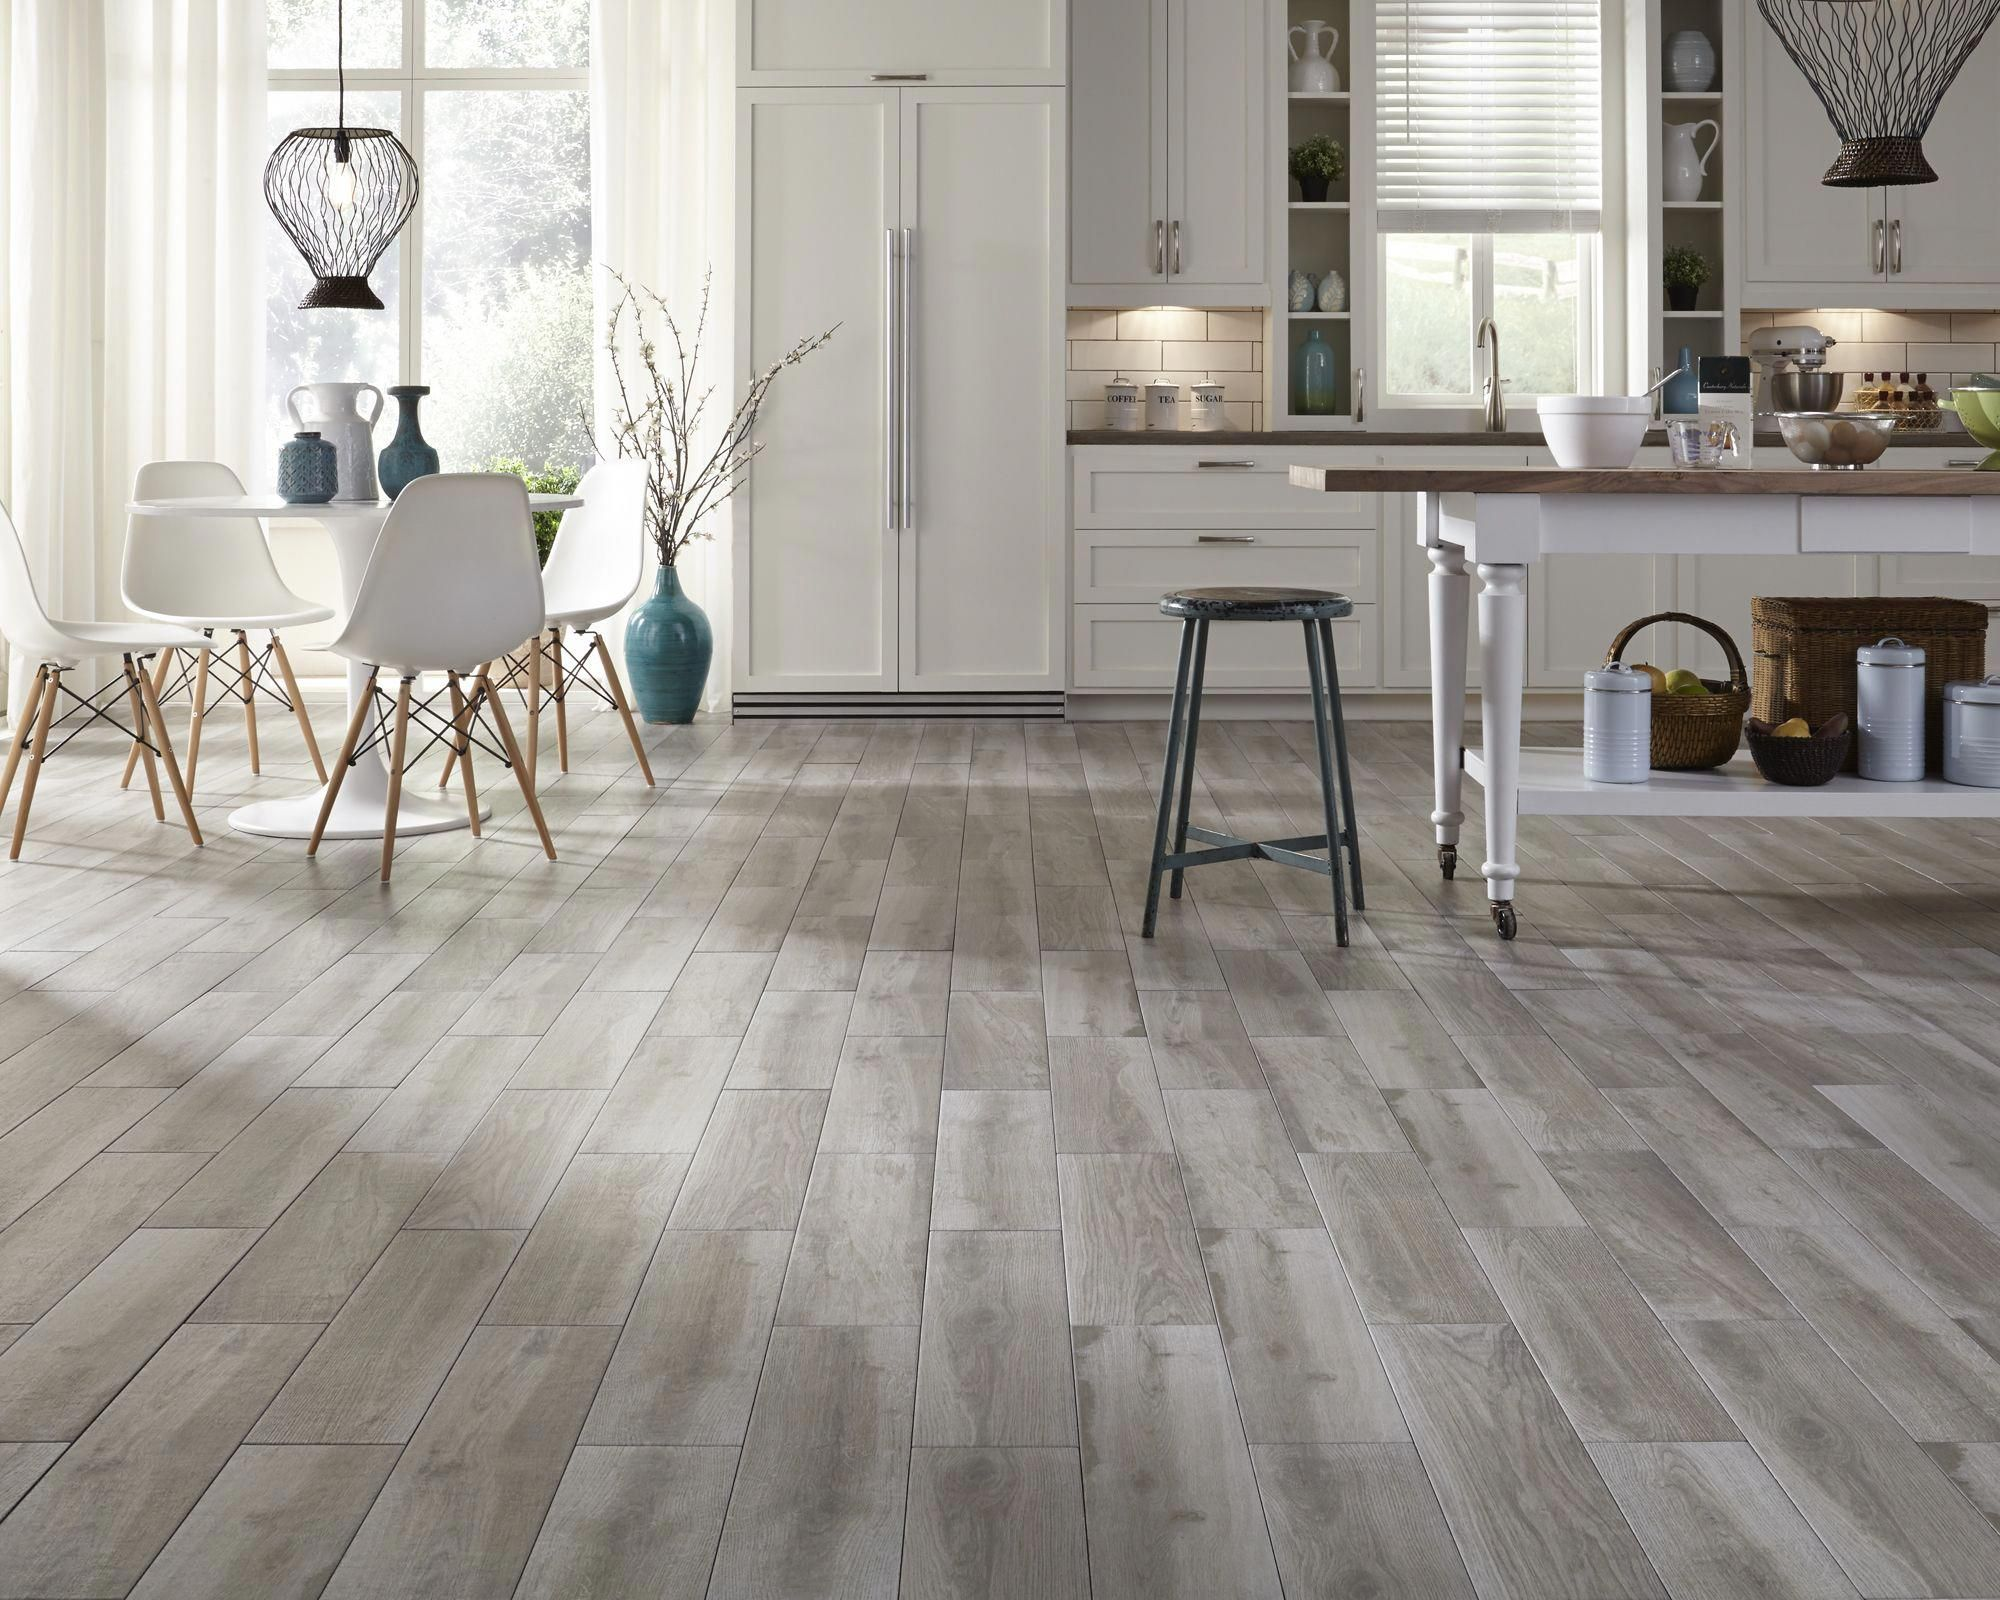 This Exciting New Flooring Trend Combines The Beauty Of Wood With